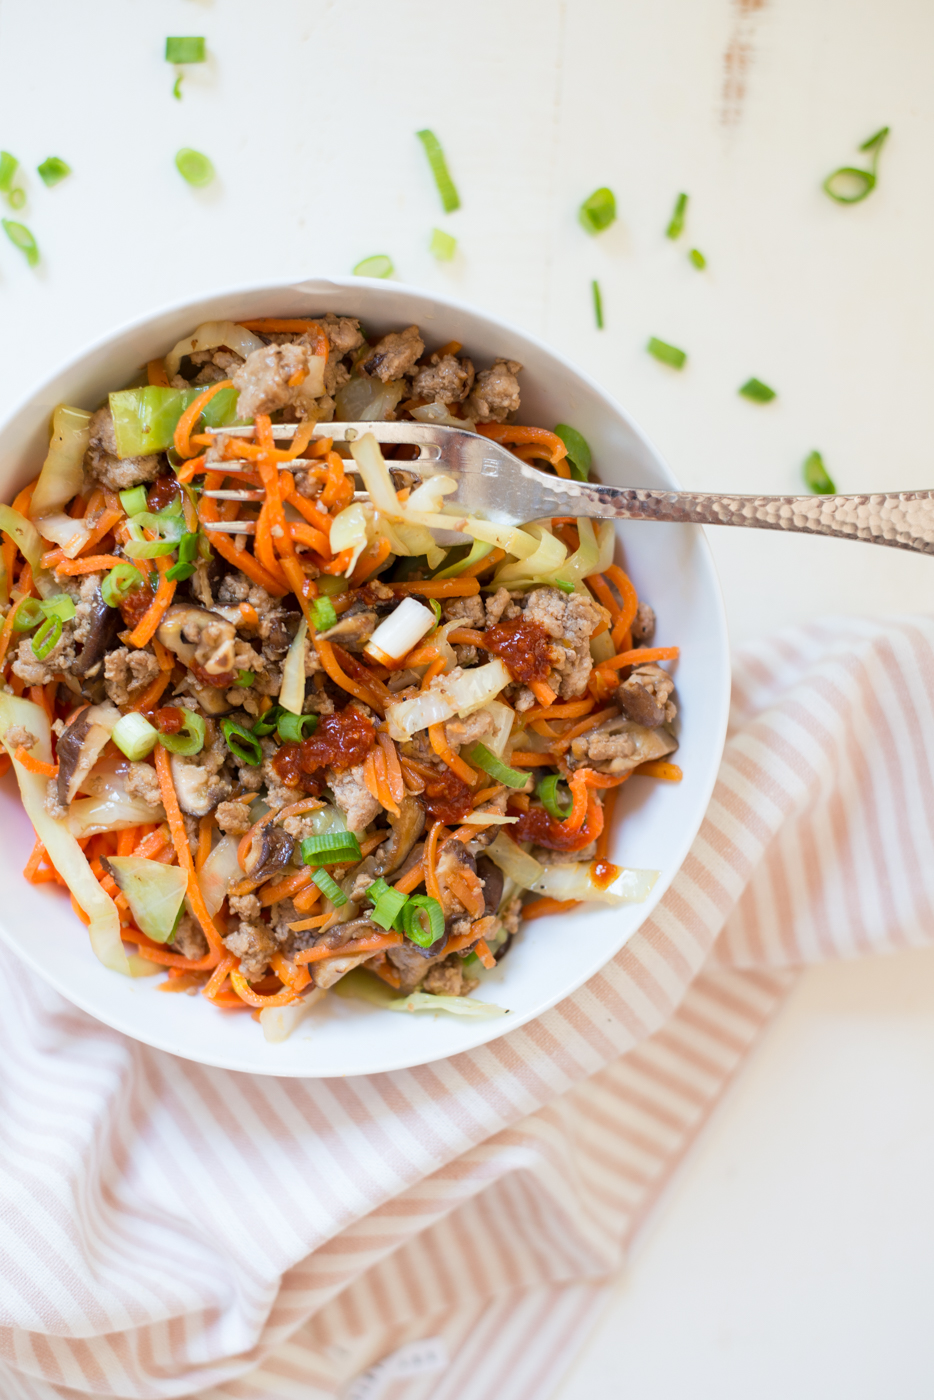 All the flavor of an egg-roll, but without the fuss. Tossed together with a tangle of veggie noodles, Egg Roll Veggie Noodle Bowls are gluten-free, dairy-free, soy-free, egg-free, nut-free, Paleo, Whole30 and so delicious!